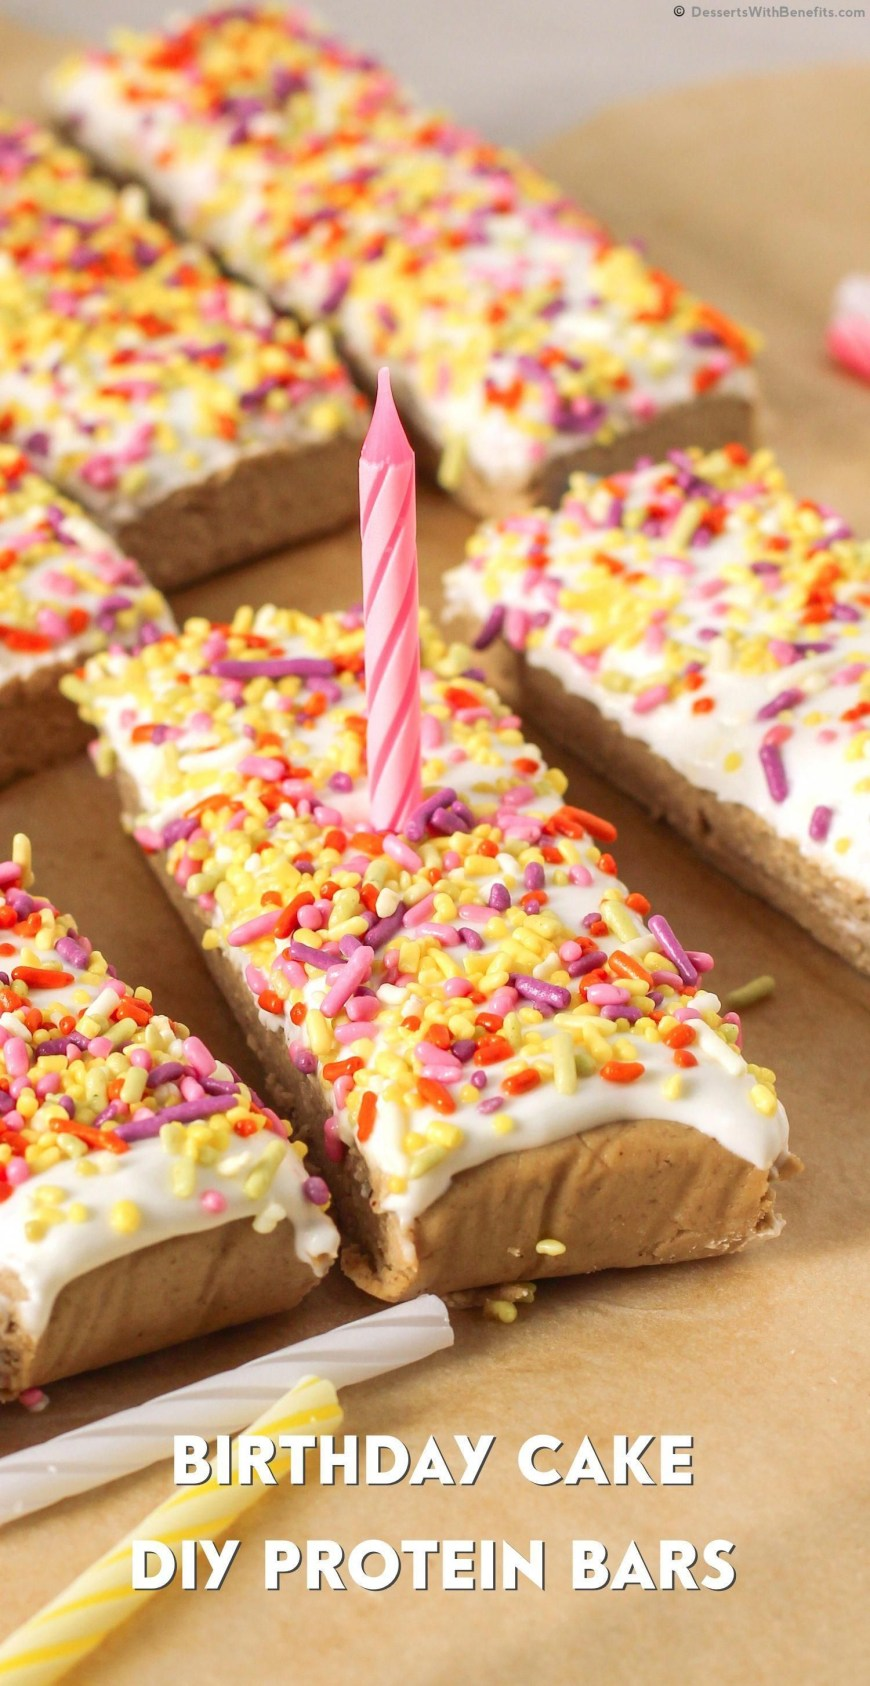 Healthy Birthday Cake Healthy Birthday Cake Diy Protein Bars From The Diy Protein Bars